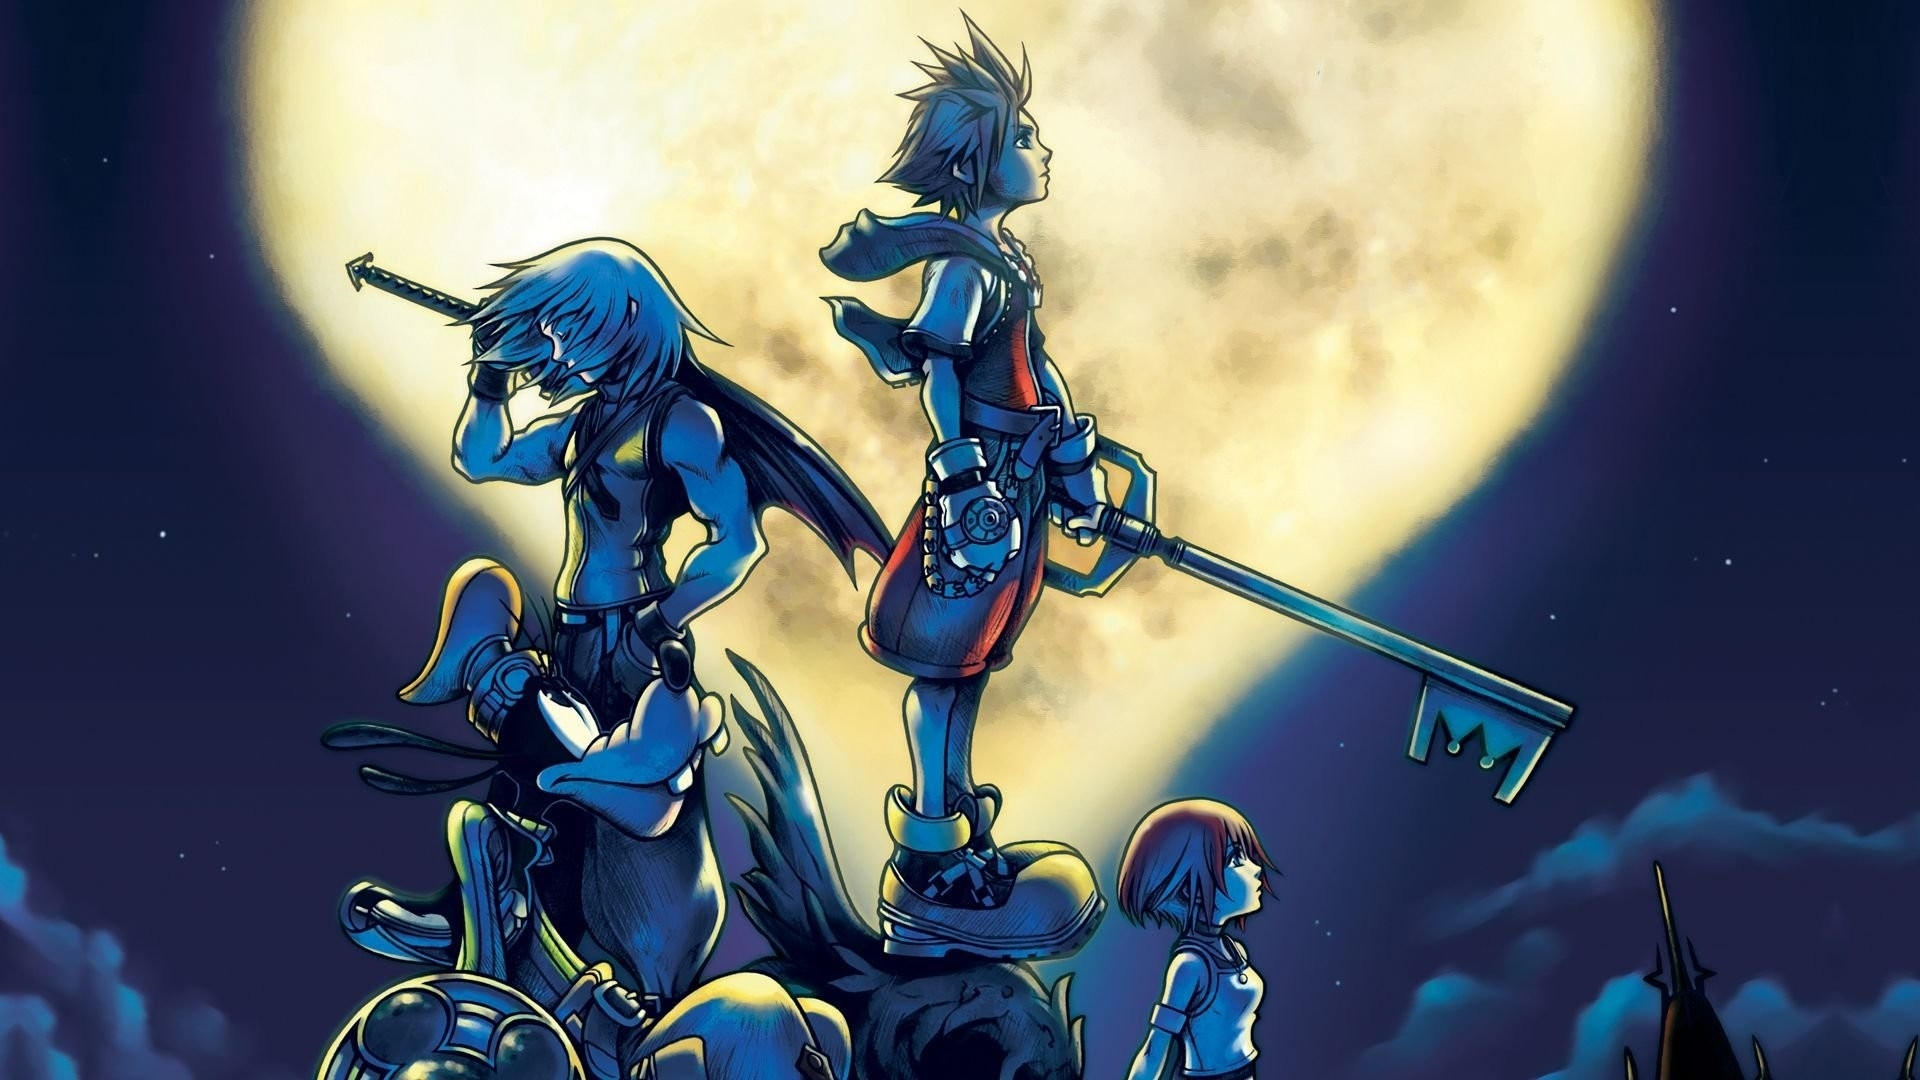 kingdom hearts riku wallpaper 70+ - xshyfc